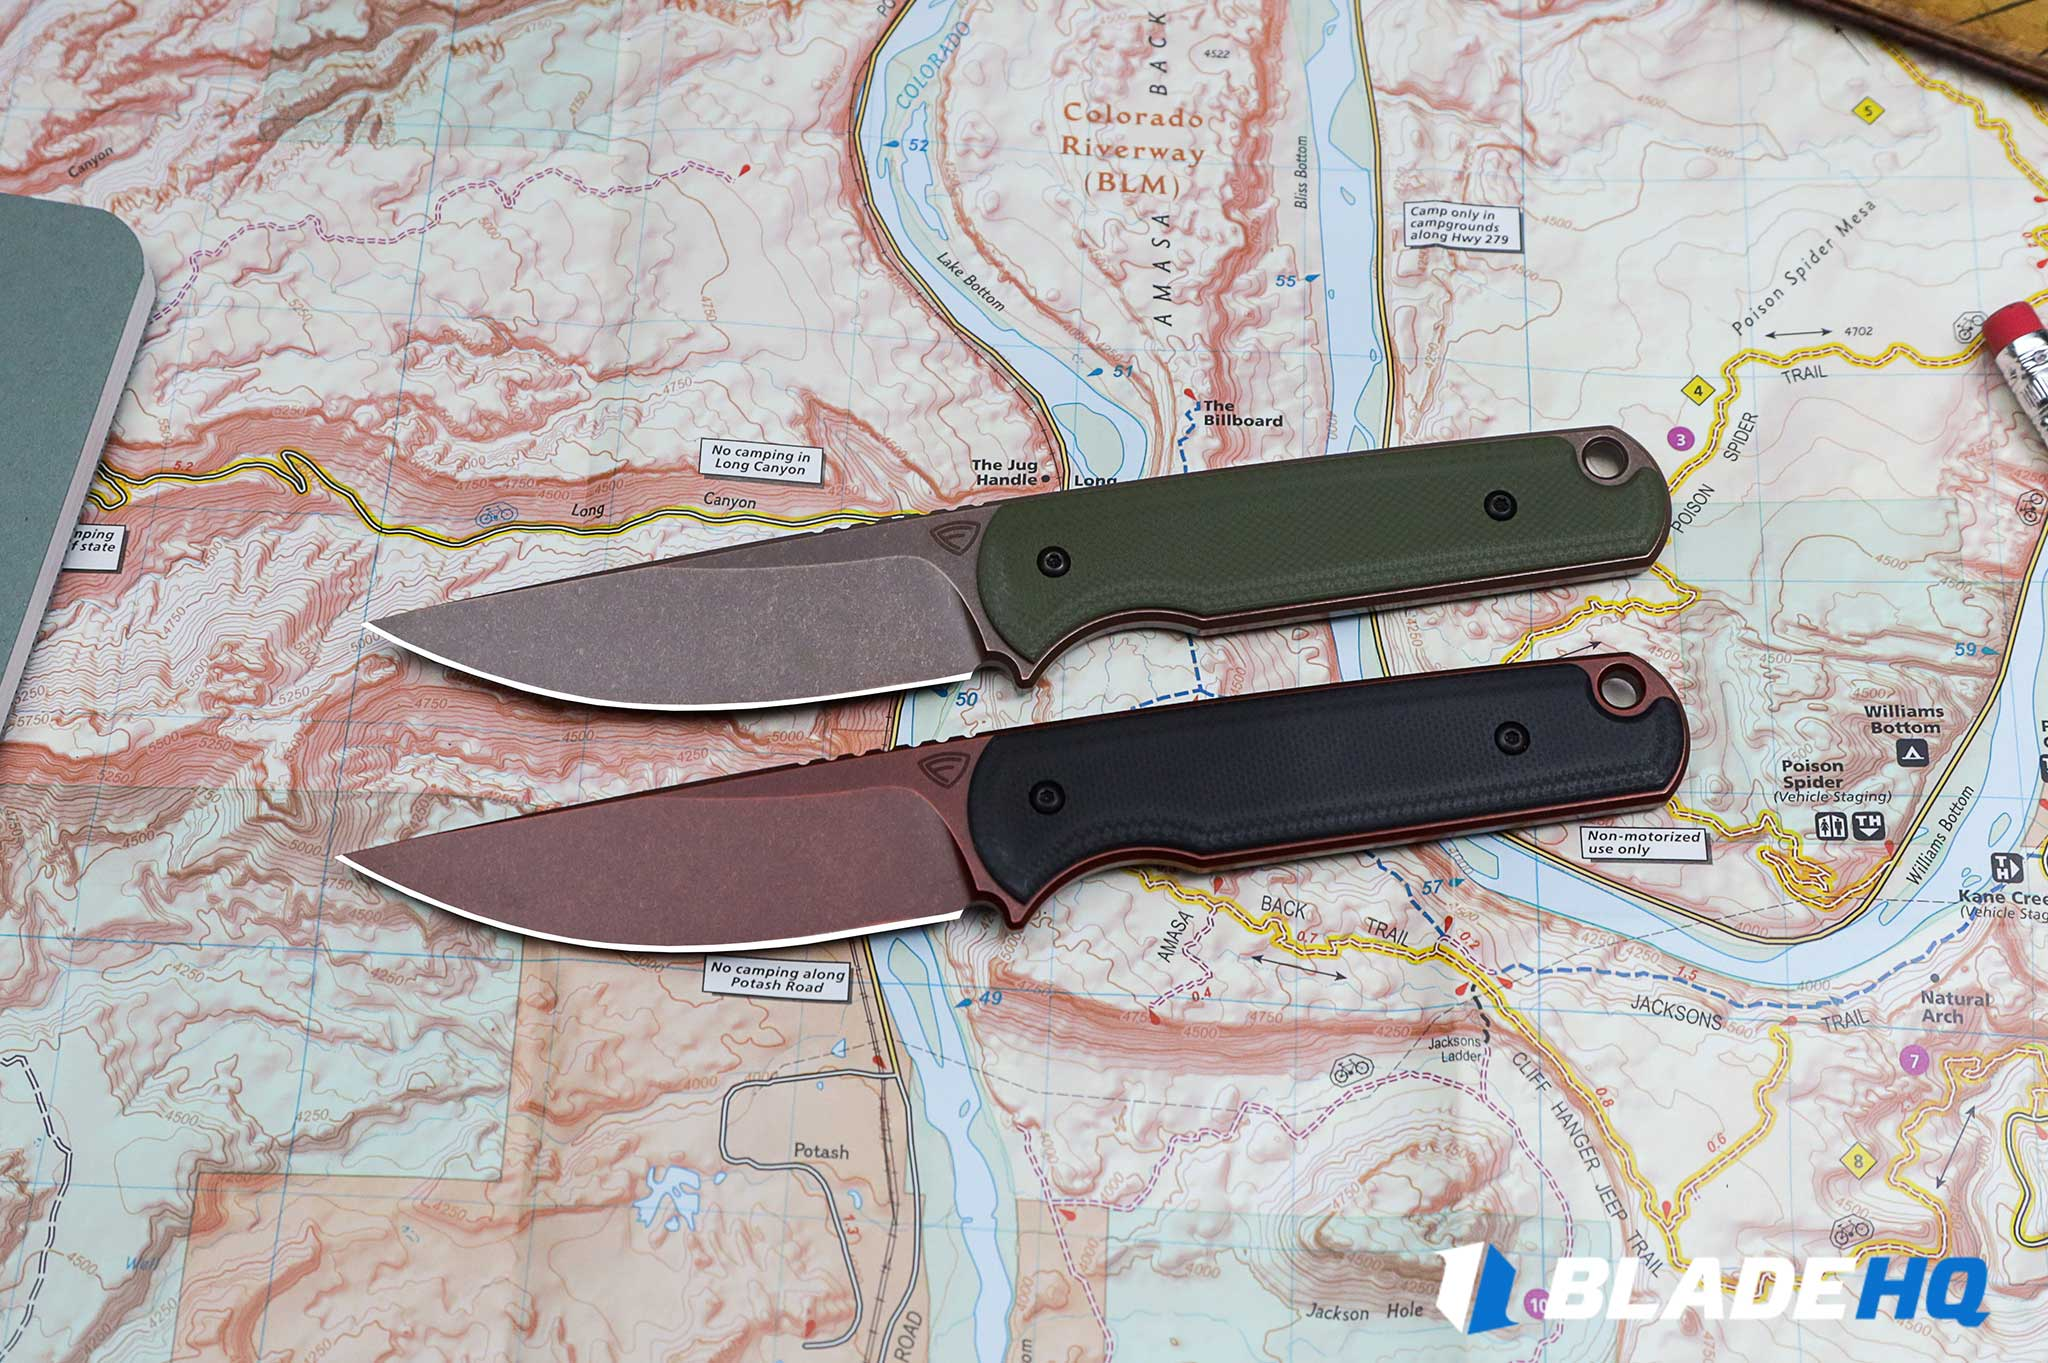 Size and Weight - How to Choose a Fixed Blade Knife